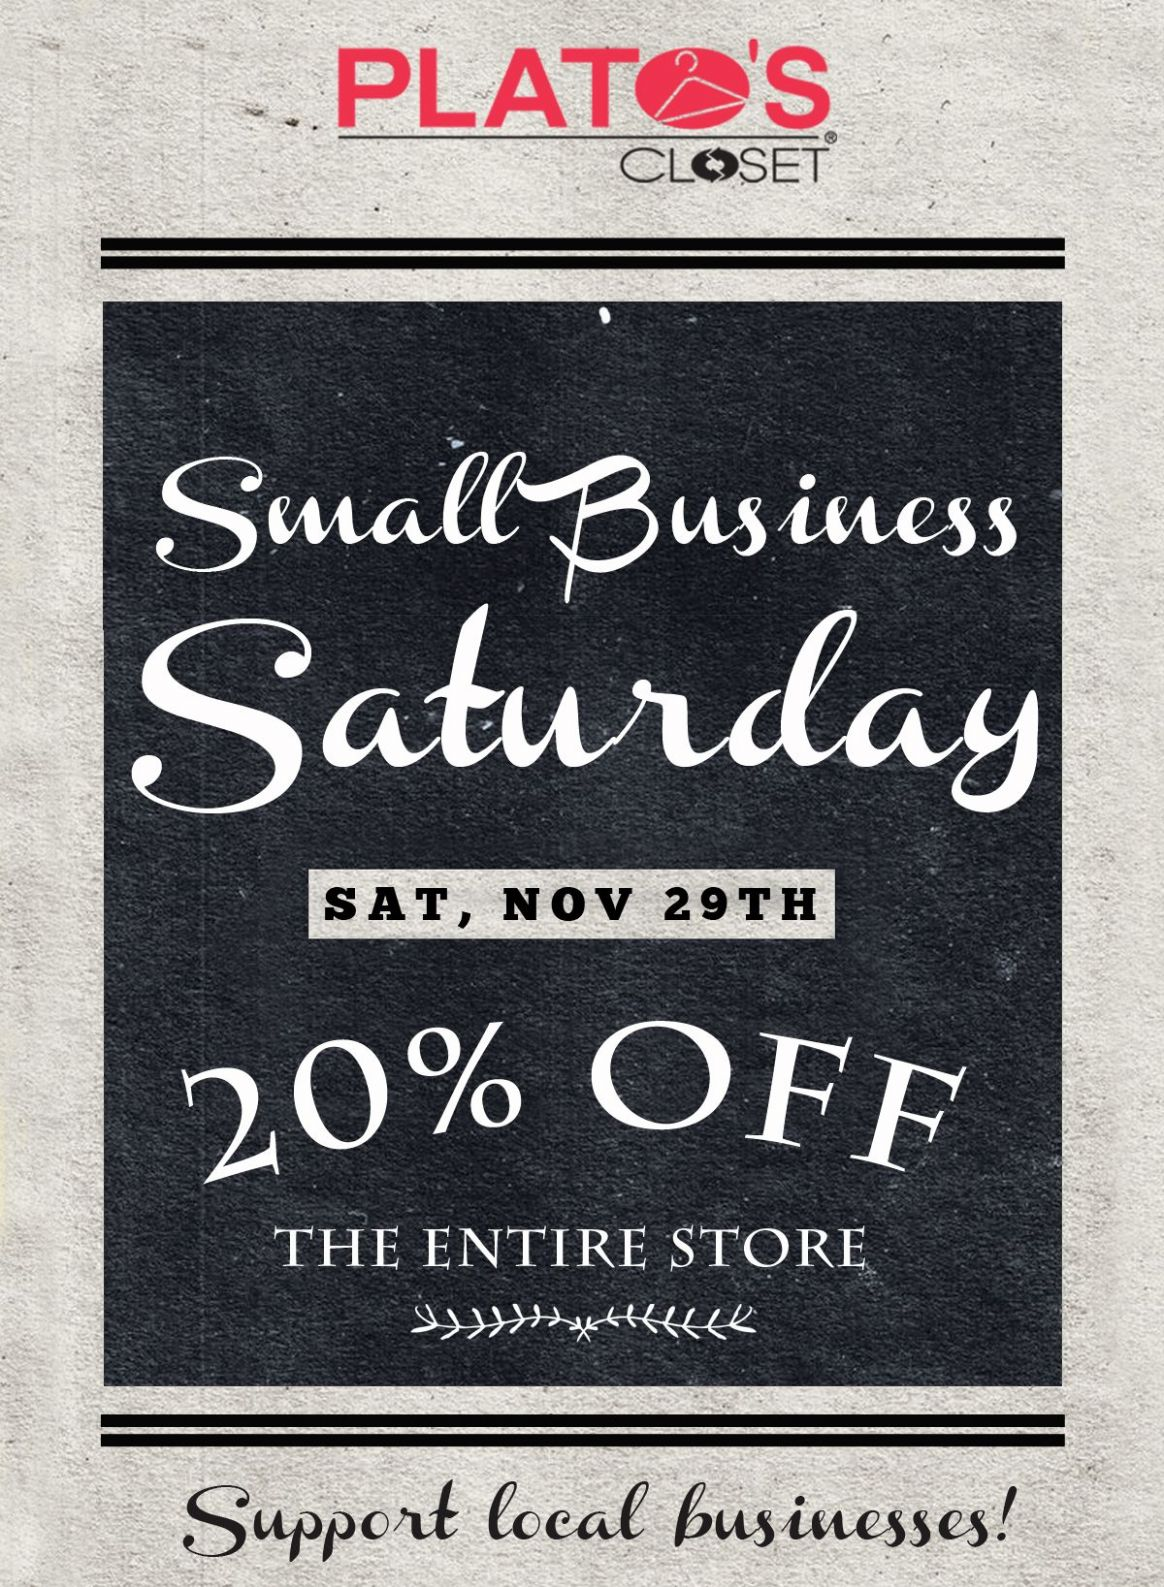 Small Business Saturday at Plato's Closet! | Support local ...